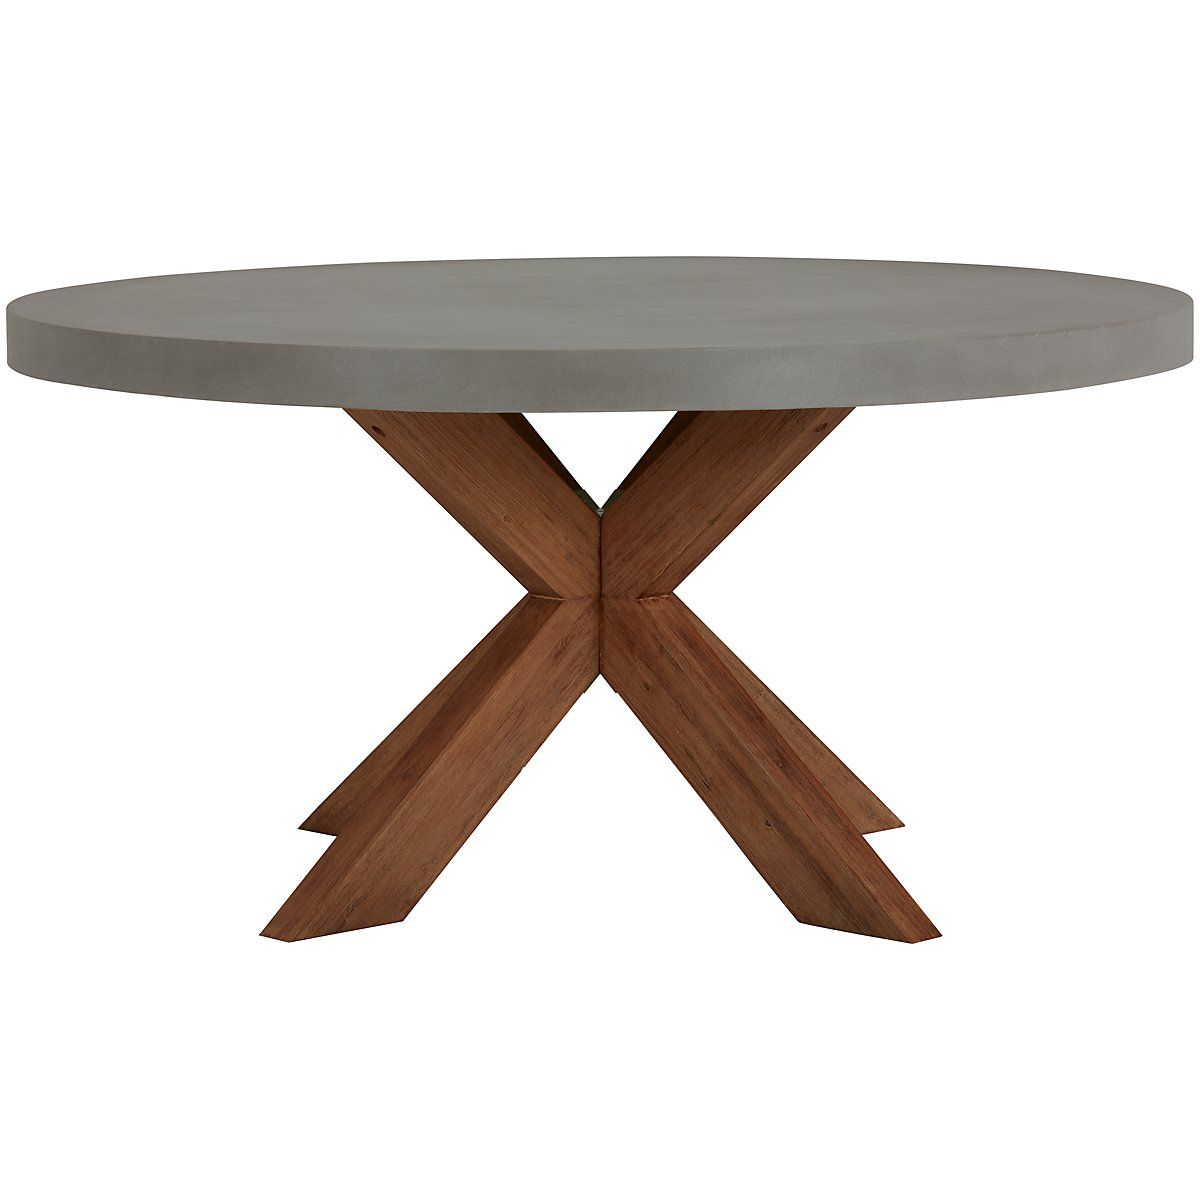 Canyon Fiberstone 60 Round Table Concrete Dining Table Round Concrete Dining Table Concrete Table Top